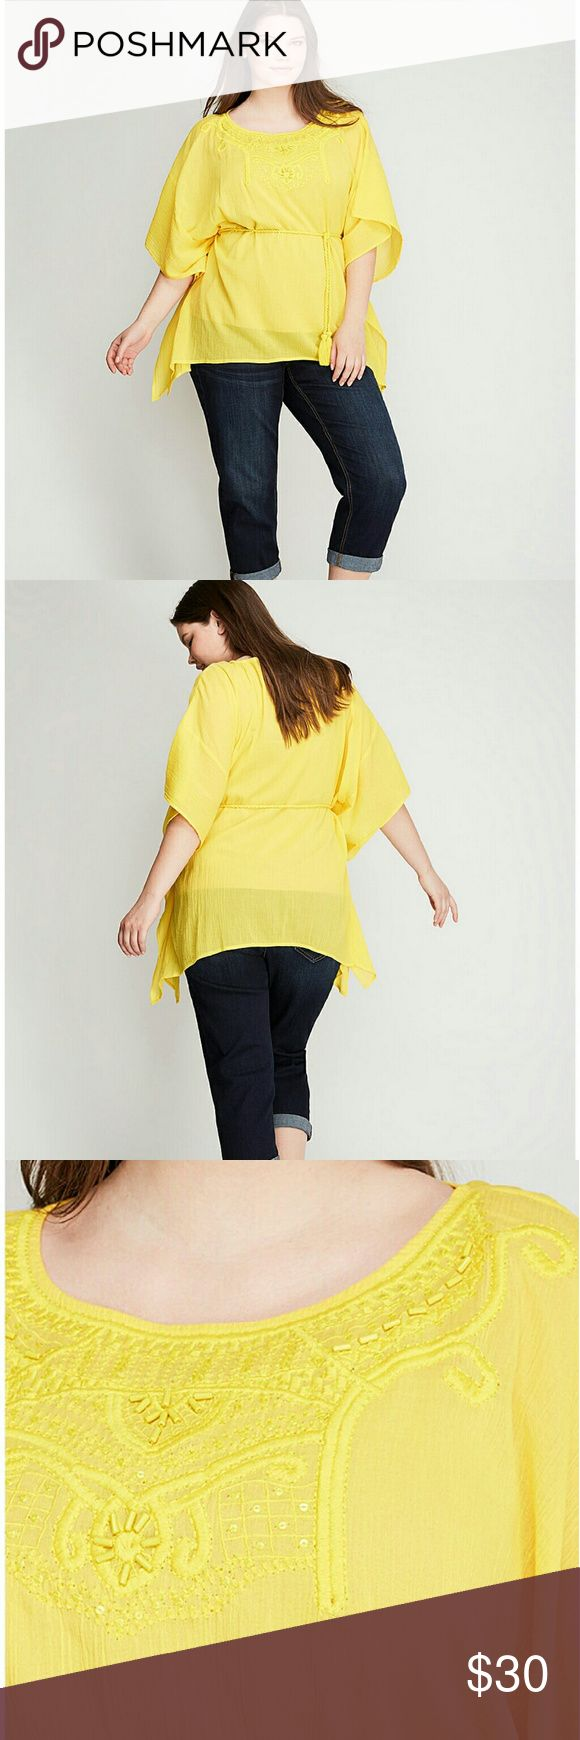 Lane bryant embroidered gauze yellow top 18/20 2x Primrose yellow, has beading, sequence, and embroidery.. rope detail brings some waist defining structure... dolman sleeves Lane Bryant Tops Blouses